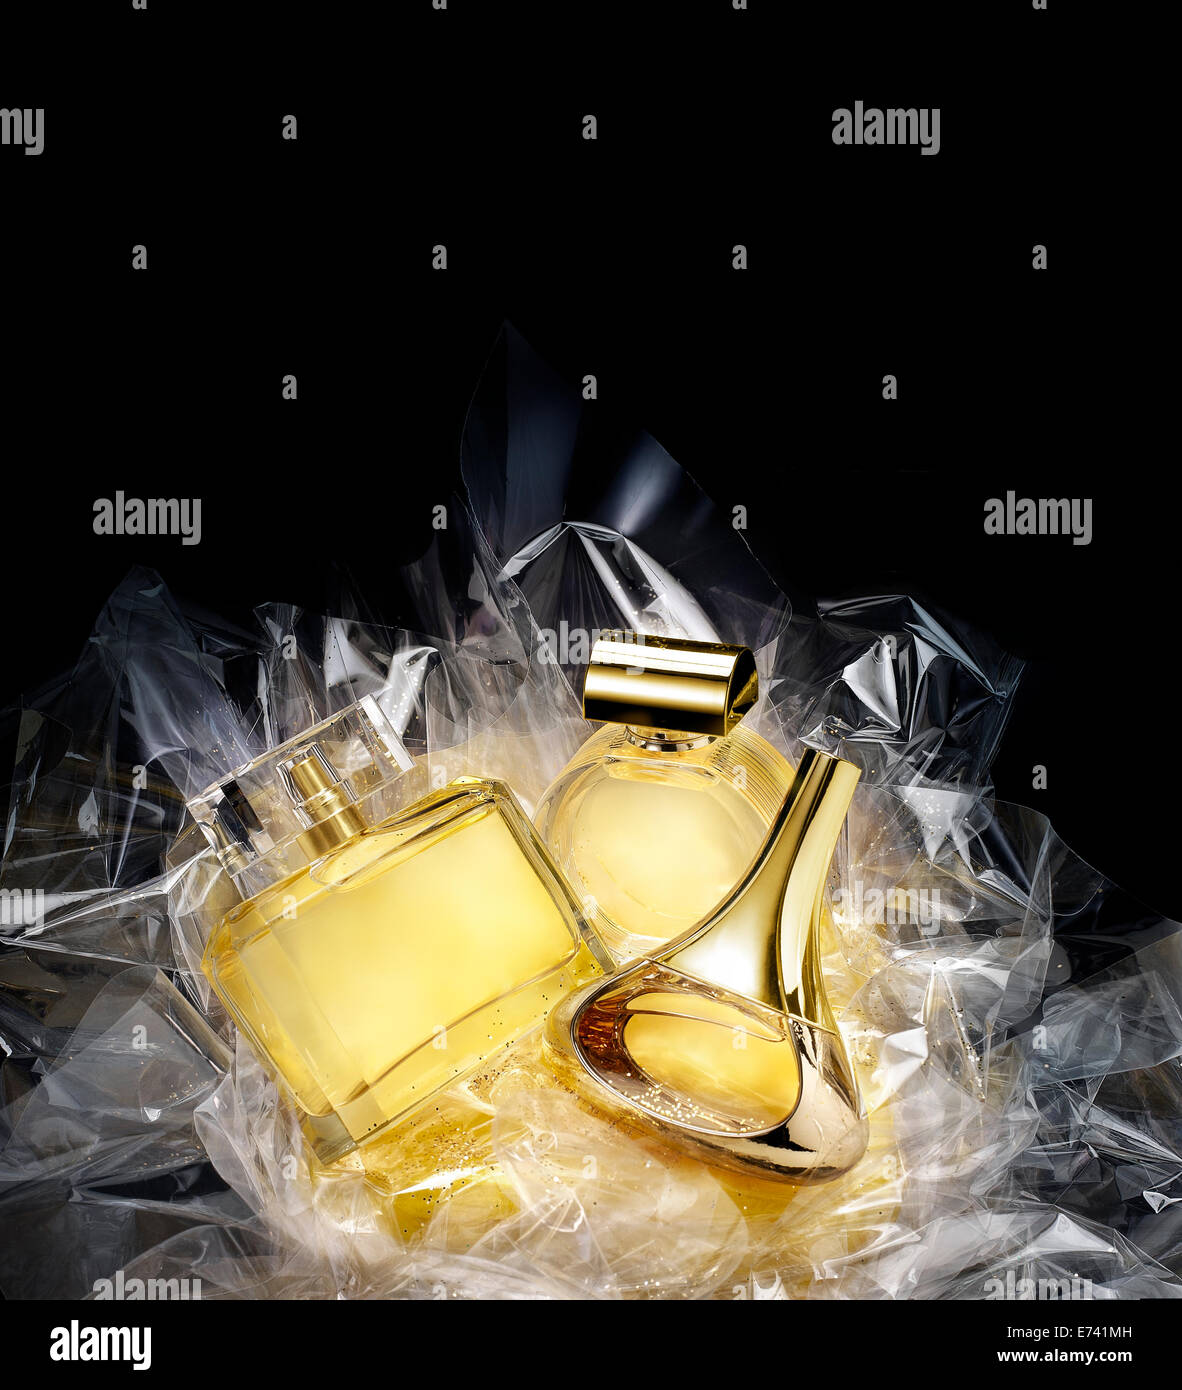 Fine fragrances in a concept gift set. - Stock Image